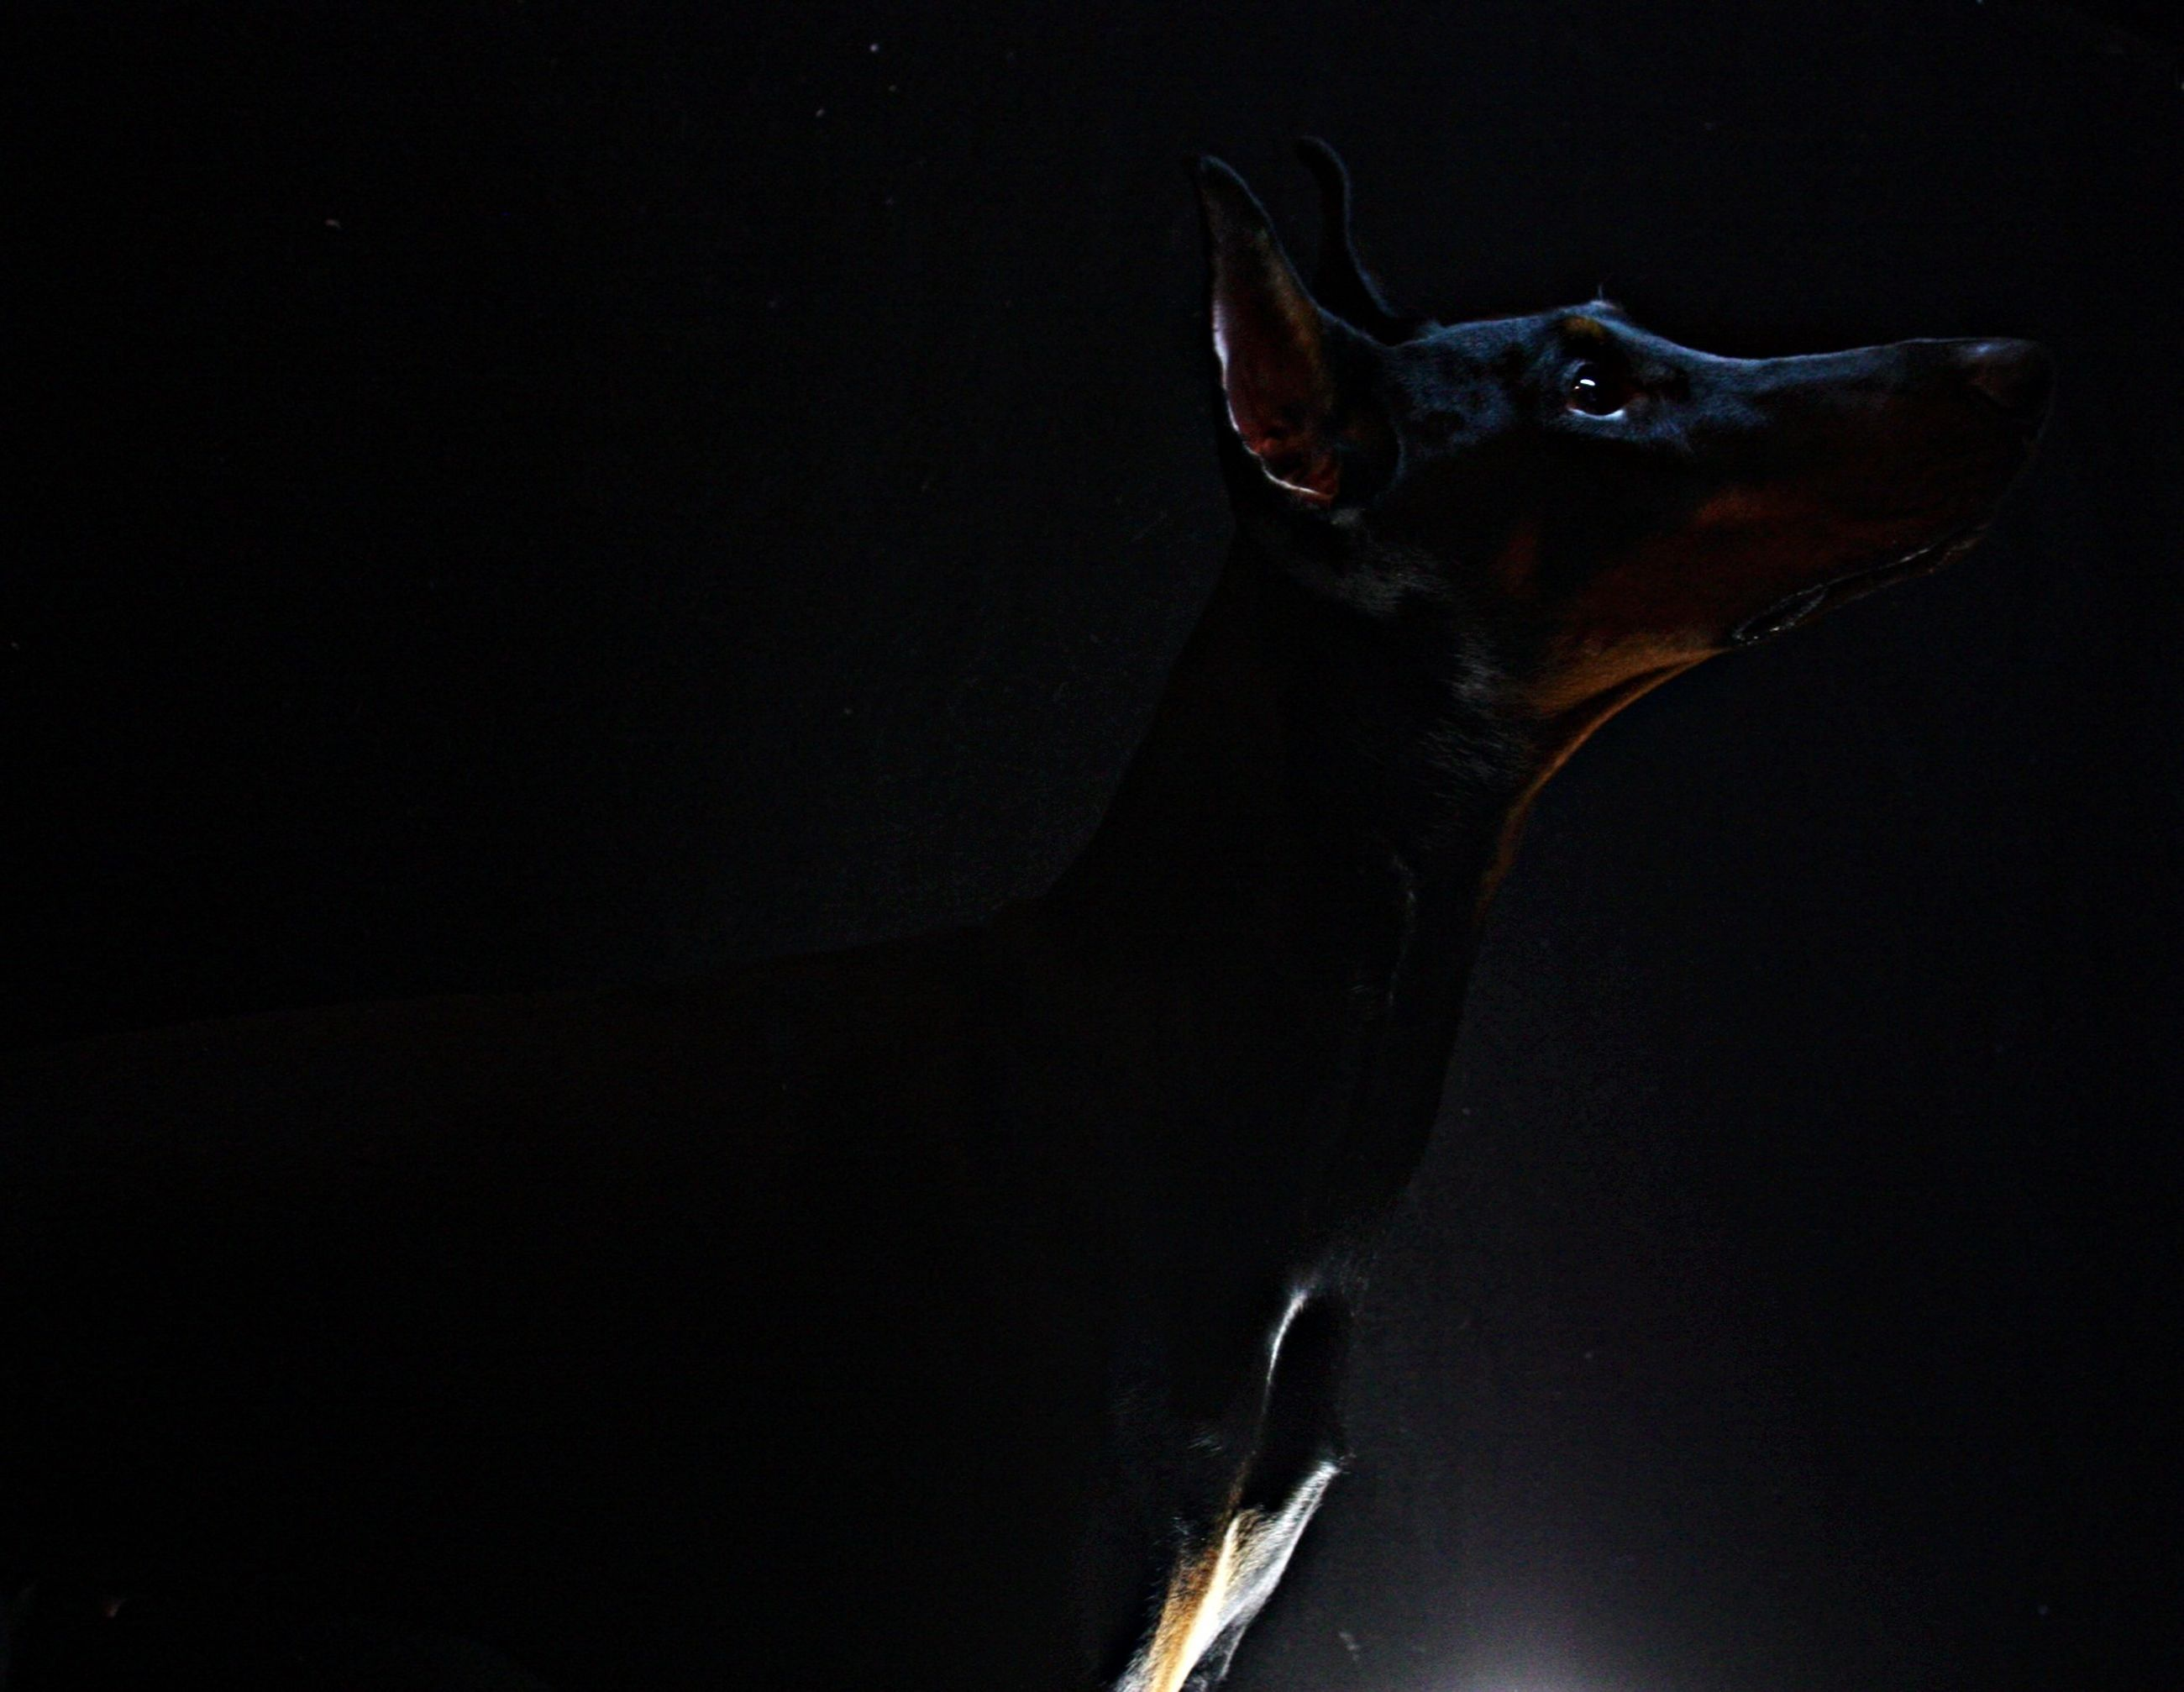 one animal, animal themes, copy space, black background, studio shot, night, motion, close-up, animals in the wild, no people, low angle view, wildlife, underwater, swimming, clear sky, nature, dark, blue, sea life, side view